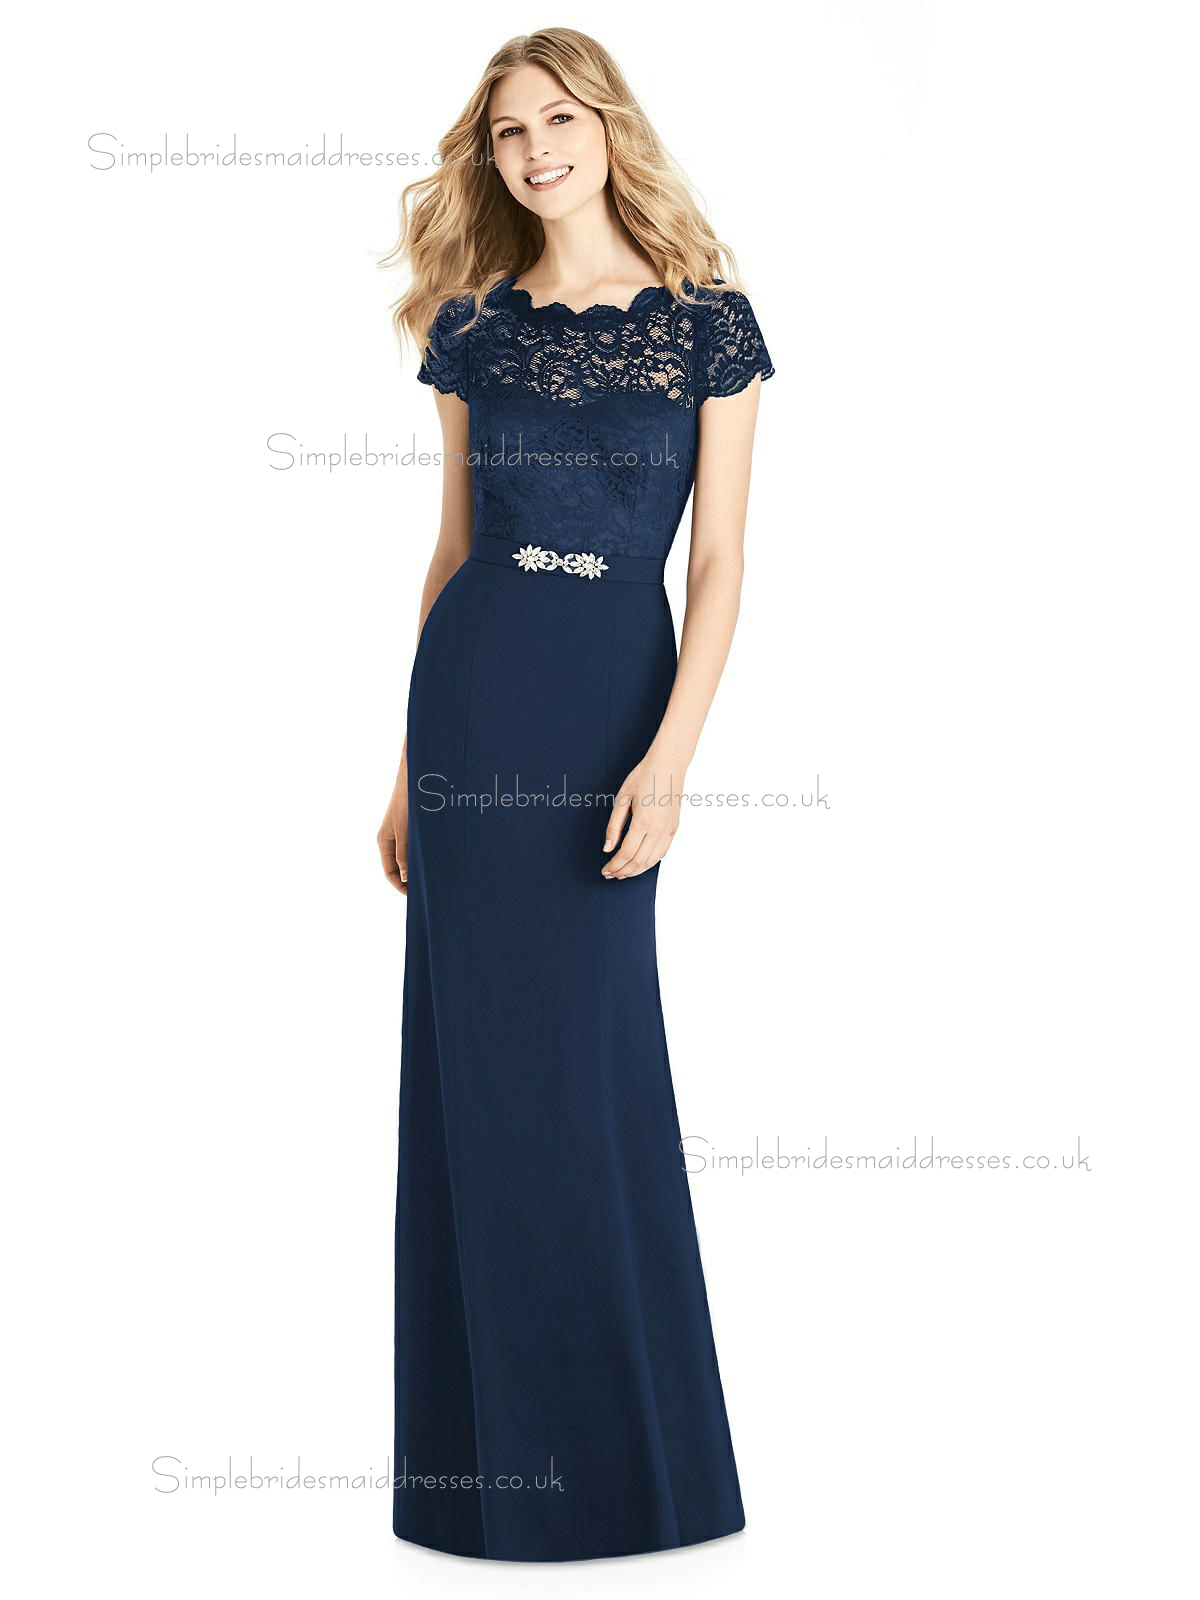 Elegant Amazing Column / Sheath Belt / Beading / Lace Satin Dark Navy floor-length Bridesmaid Dress